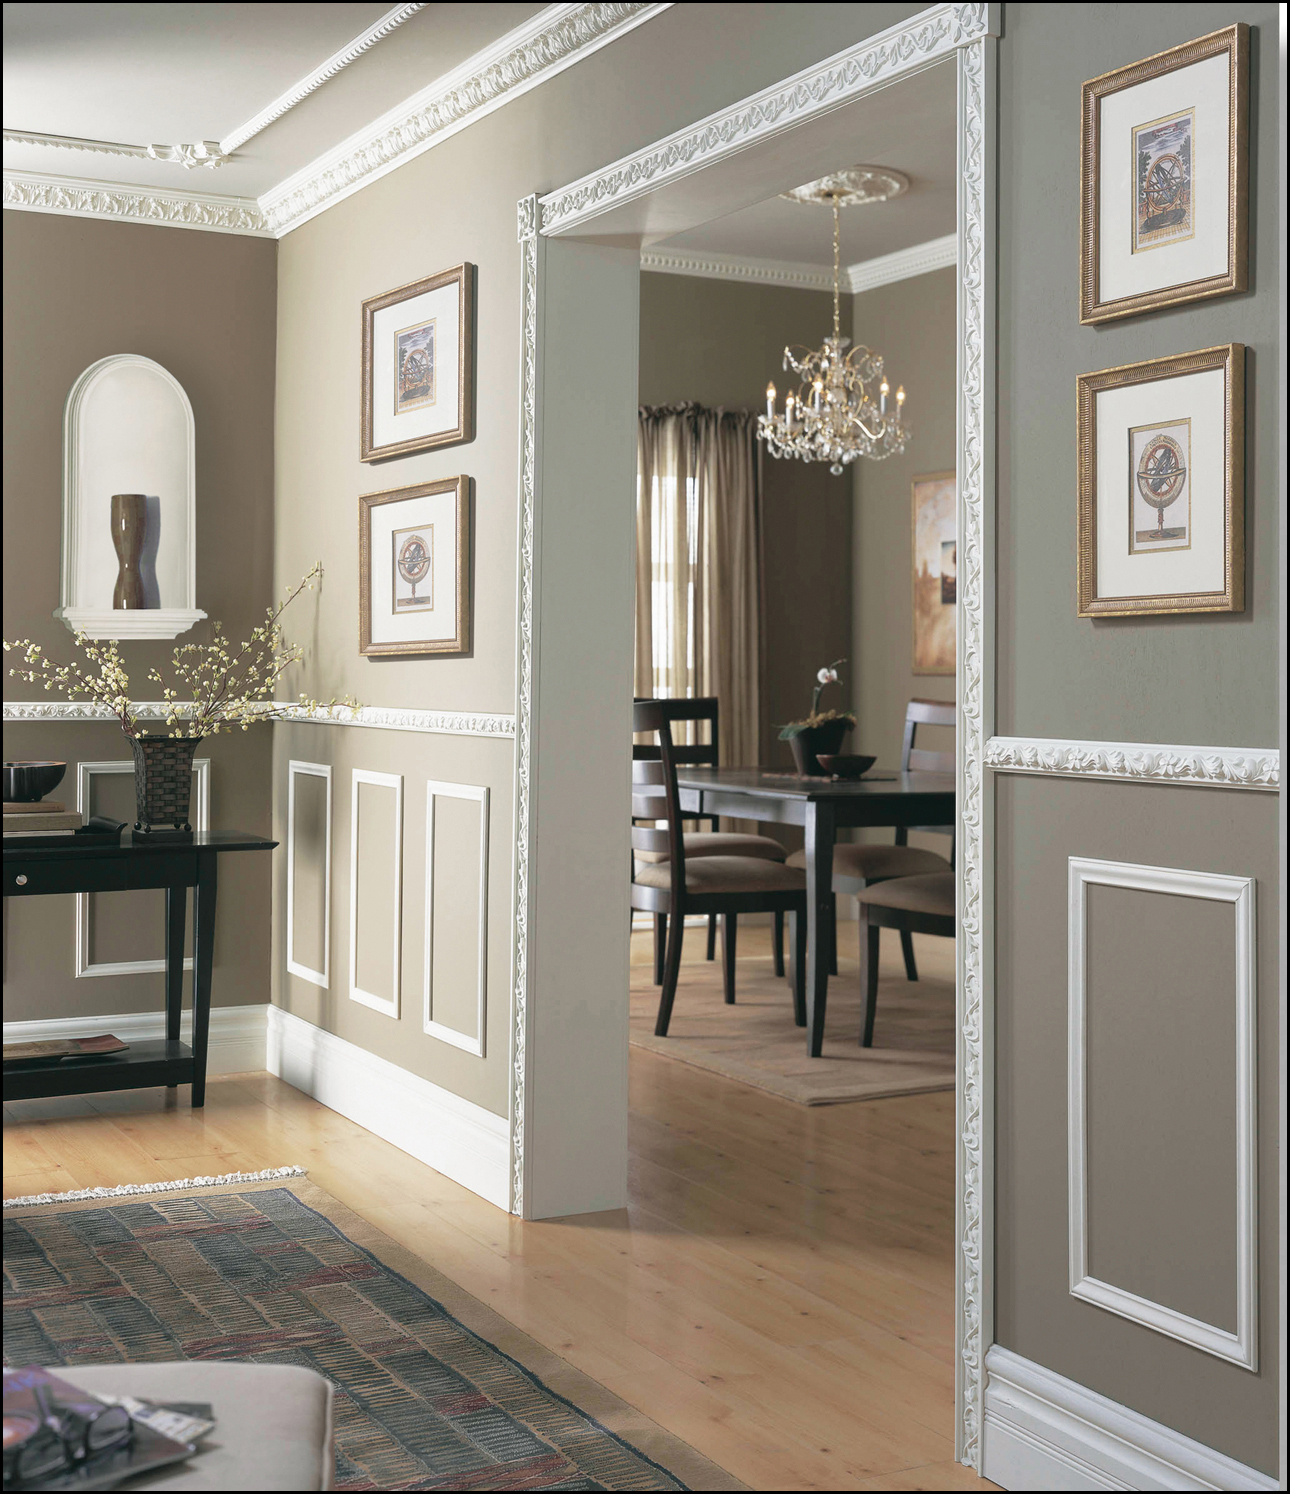 Dining room archives page 34 of 128 design your home for Dining room trim ideas